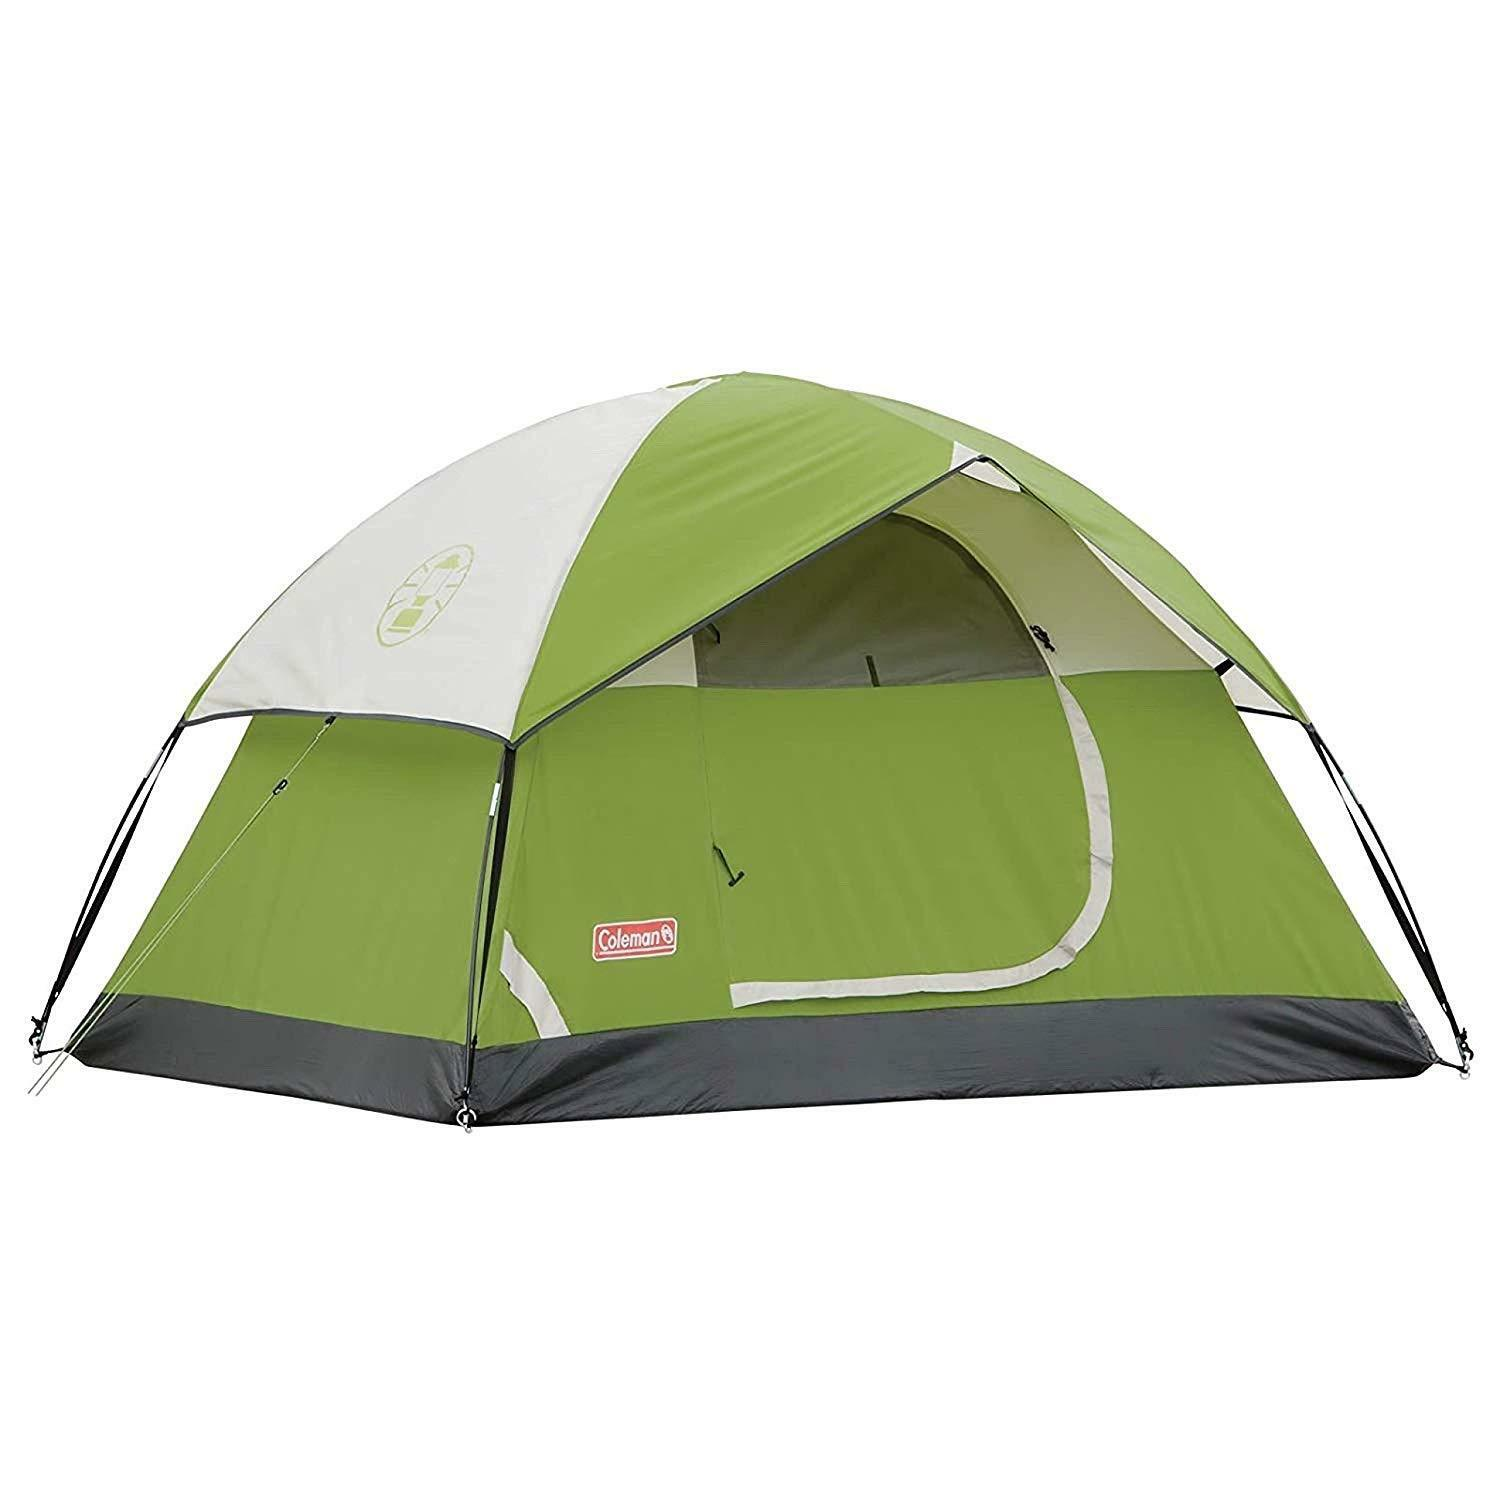 Camping Tent Dome Patented  Welded floors Spacious Easy Setup w  Rain Predection  sale online